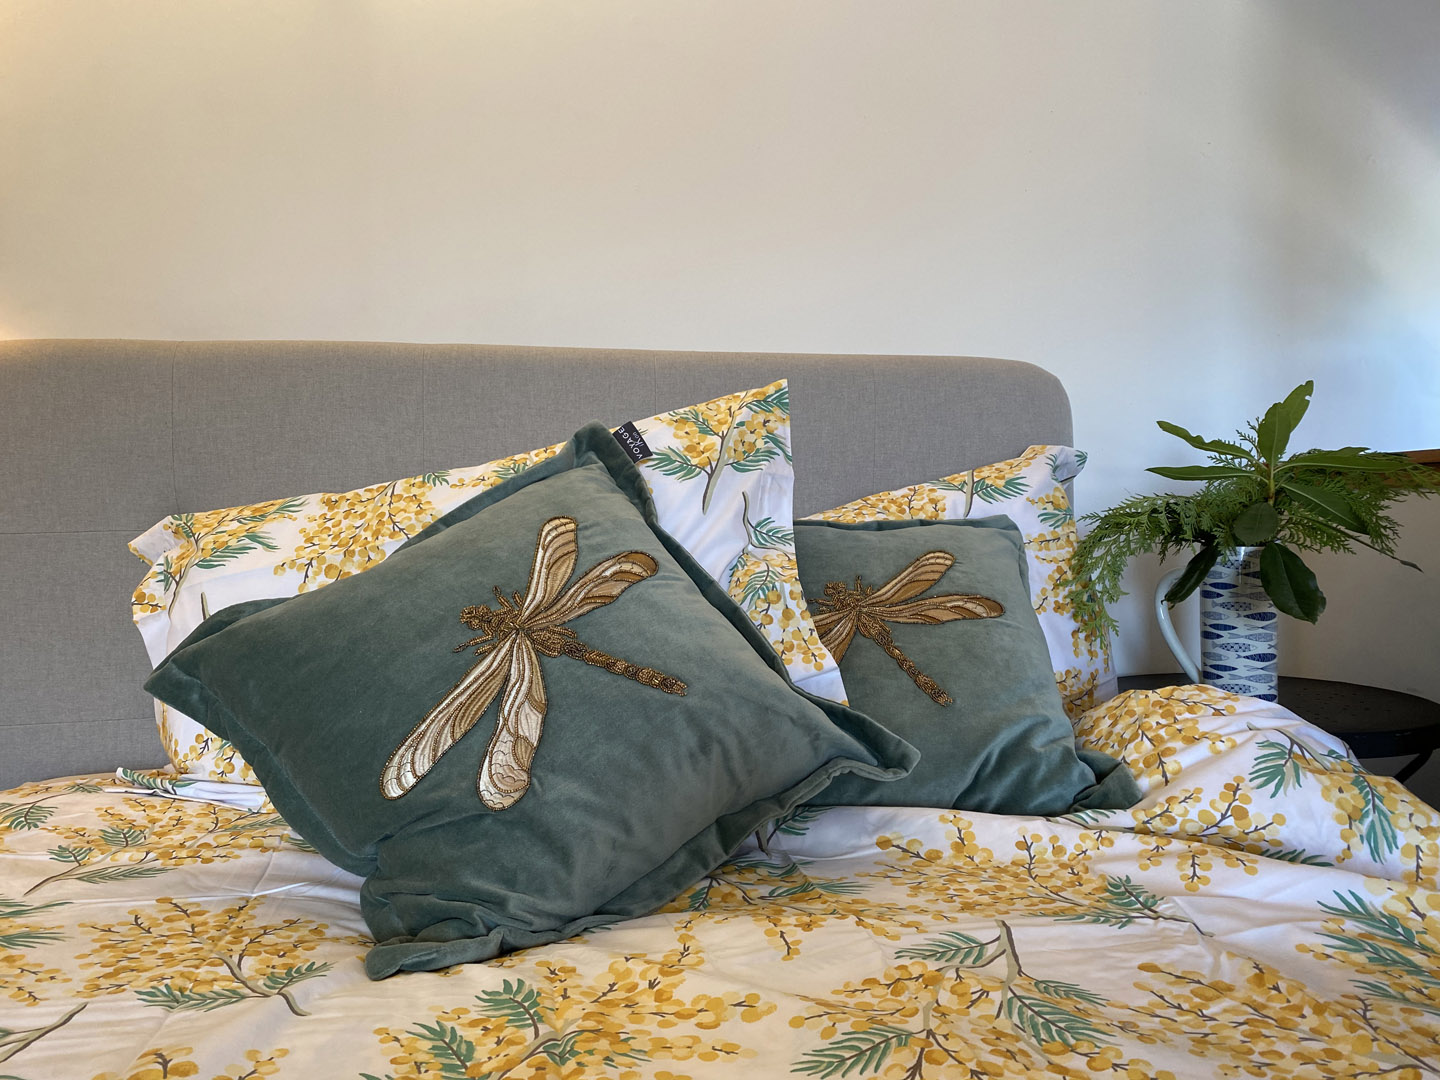 Comfy eclectic bedding | Hotel in the Highlands